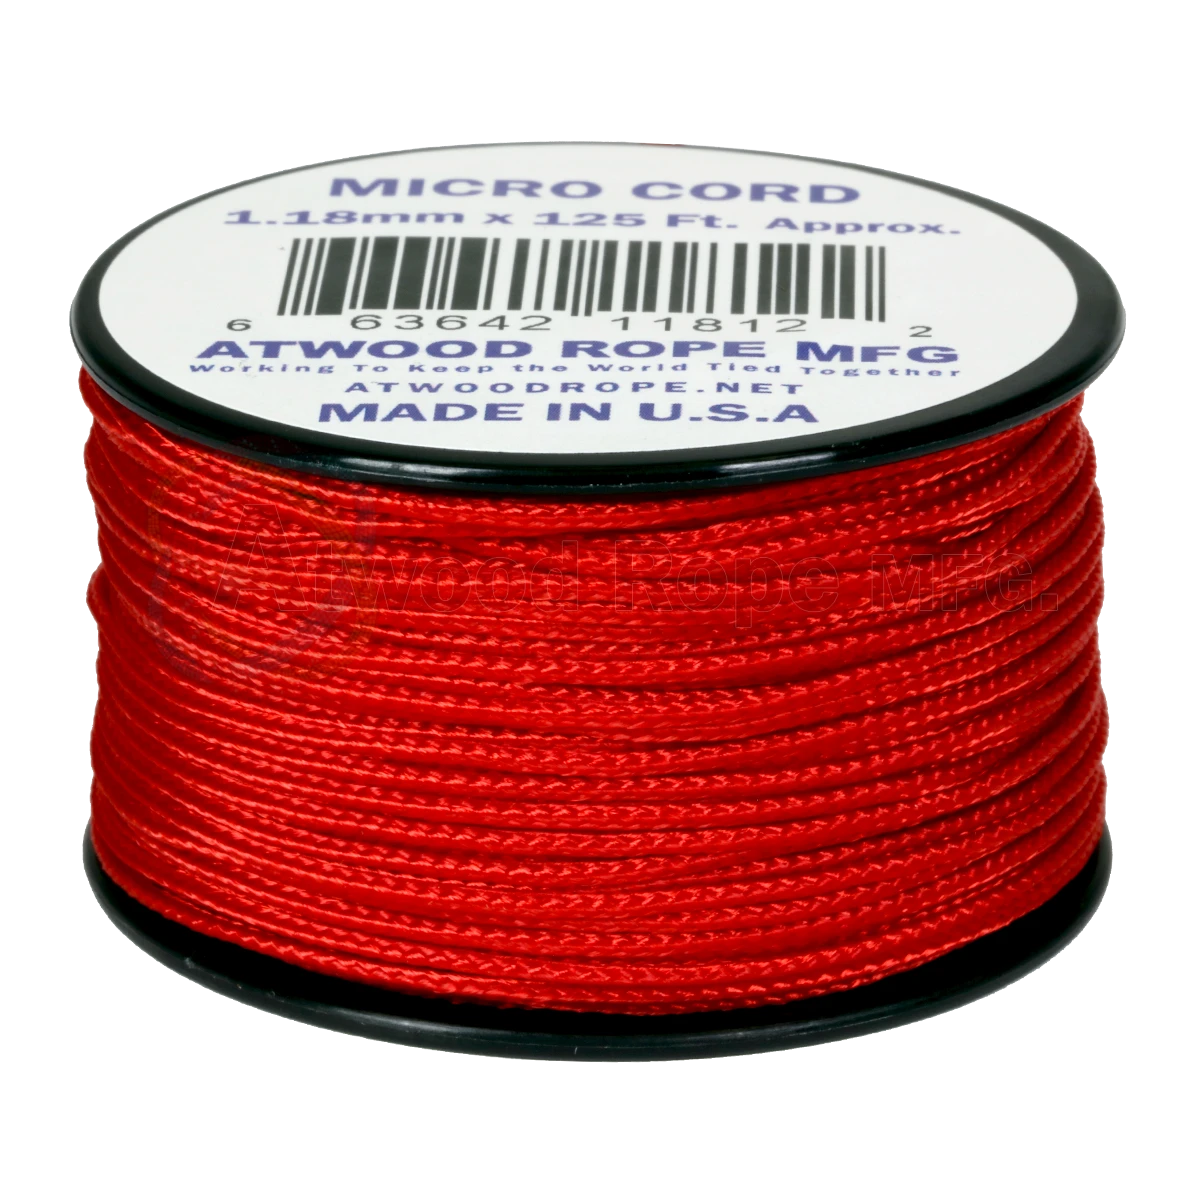 Dây Micro Cord 1.18mm – 100ft – Red